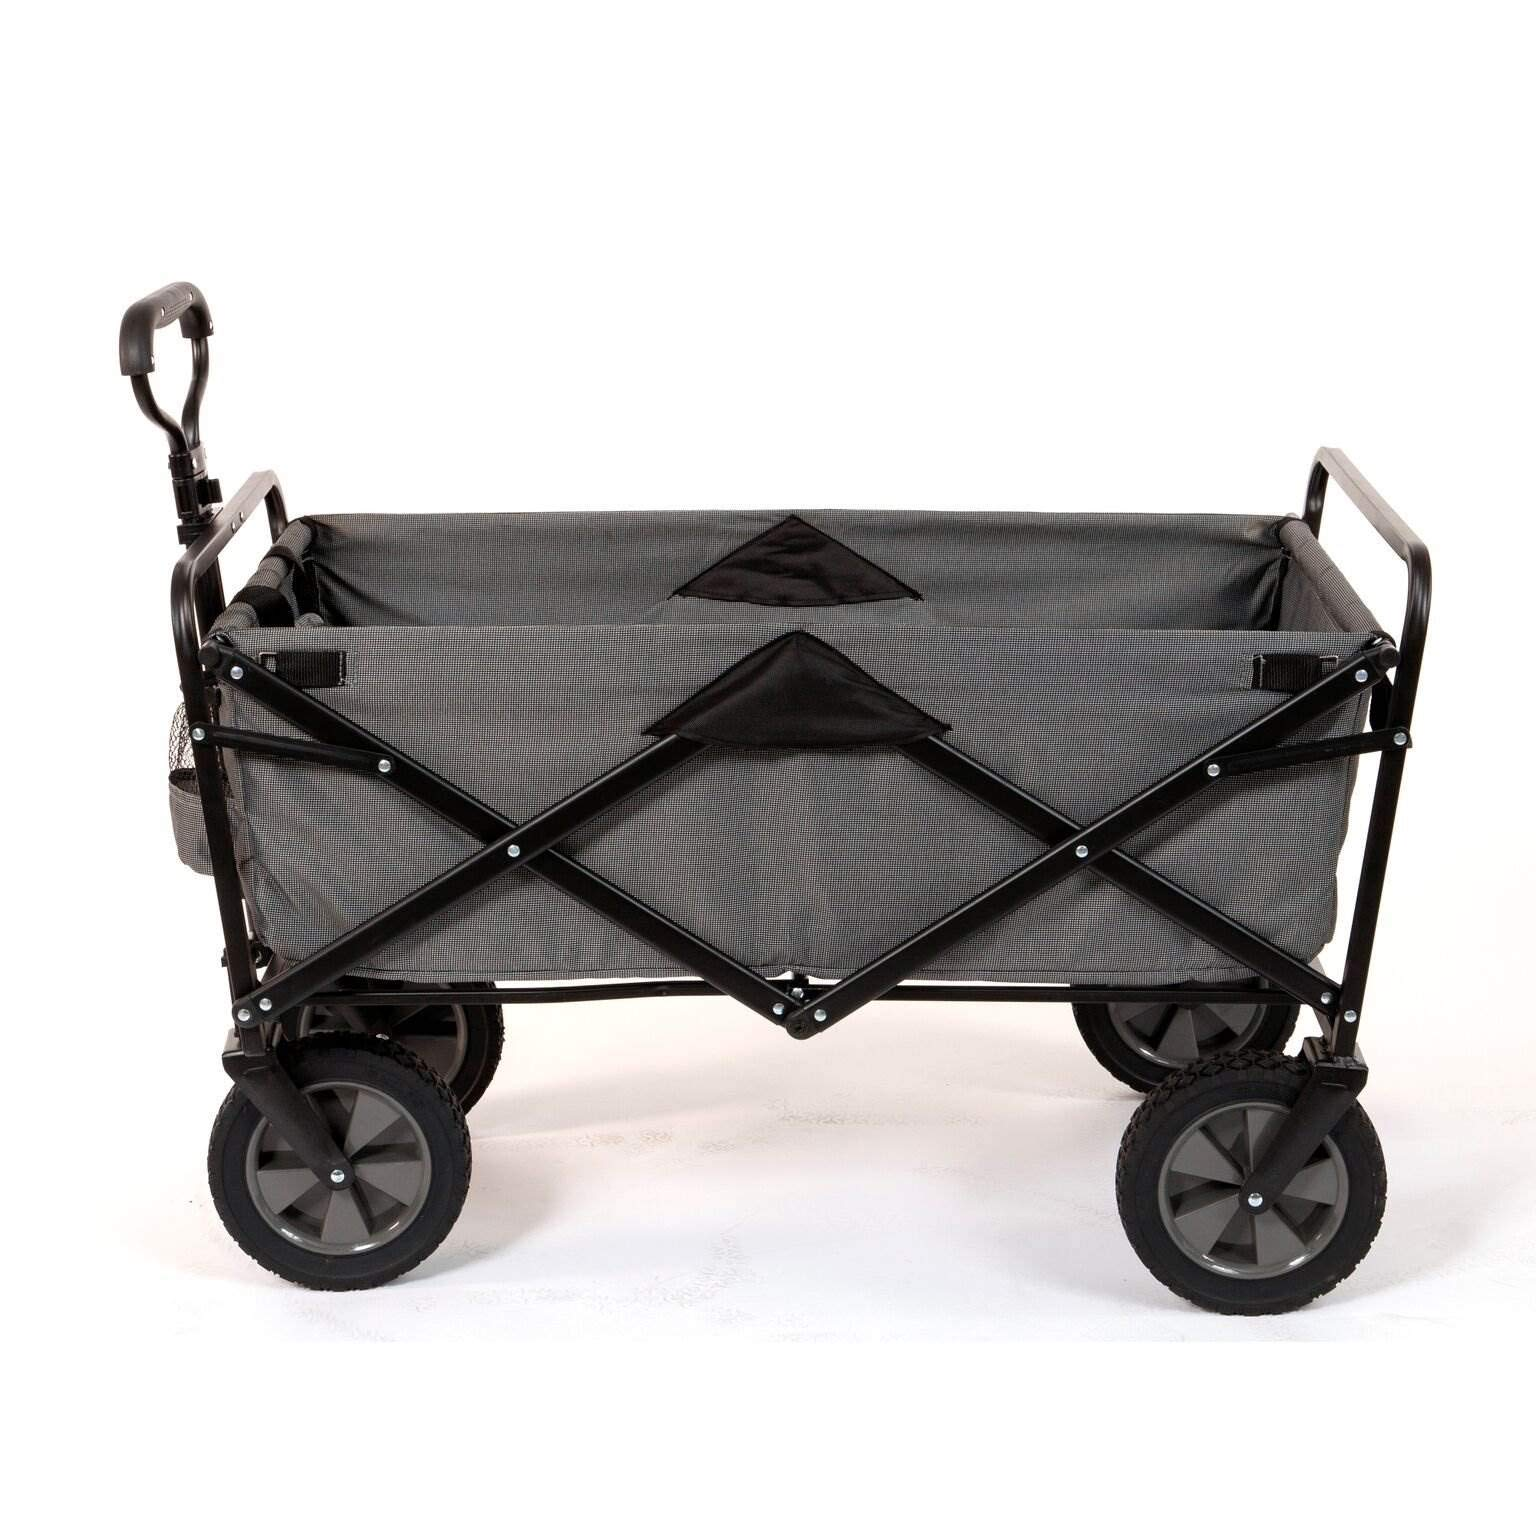 Mac Sports Collapsible Folding Steel Frame Outdoor Garden Camping Wagon, Gray by Mac Sports